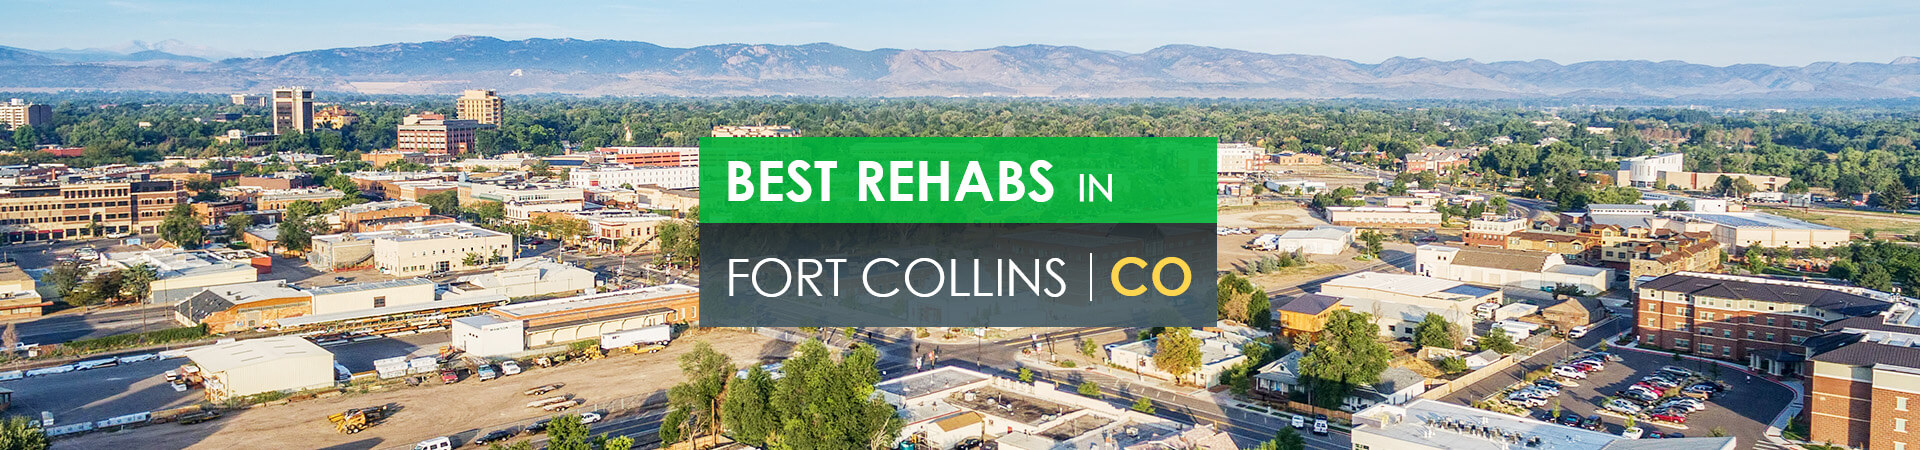 Best rehabs in Fort Collins, CO